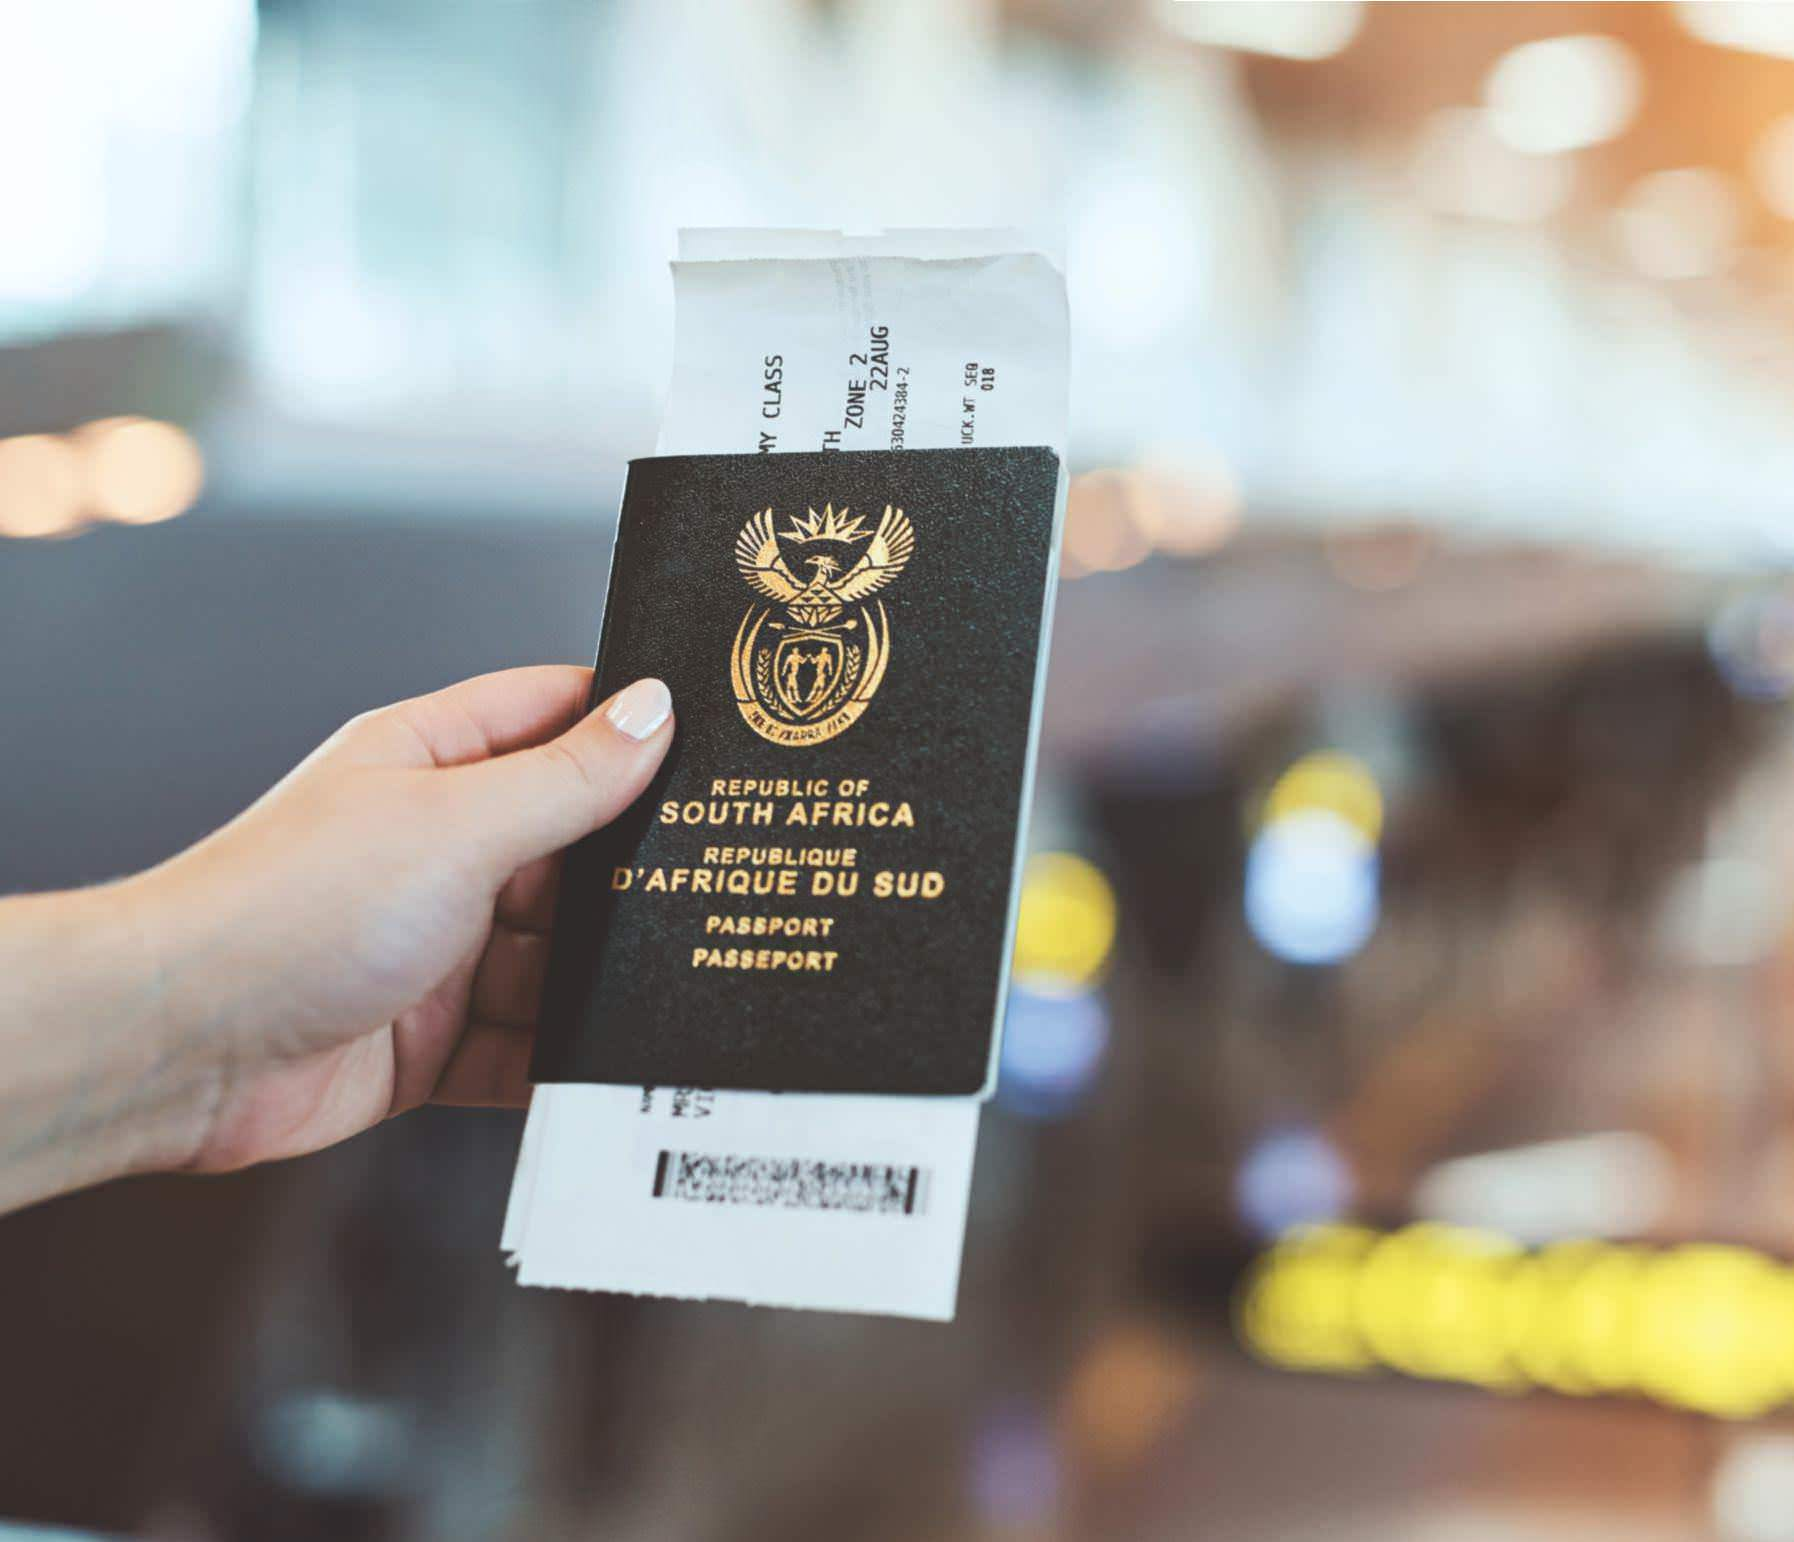 Passports and Visas Are Mission Critical